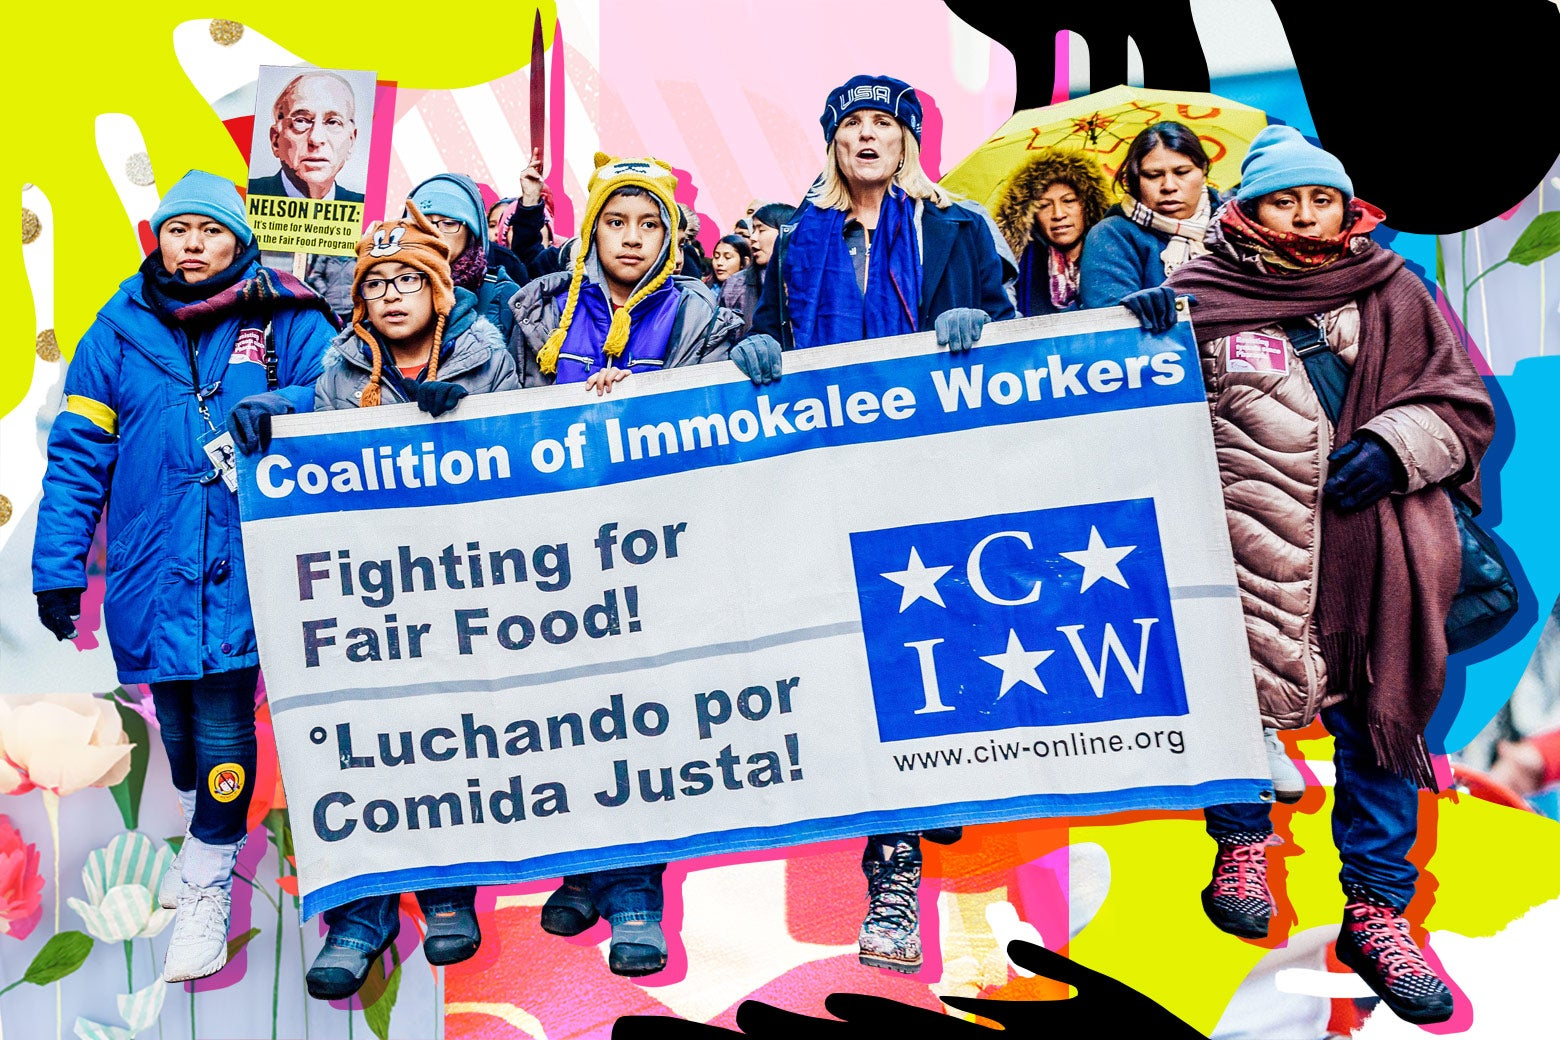 Workers from the Coalition of Immokalee Workers.